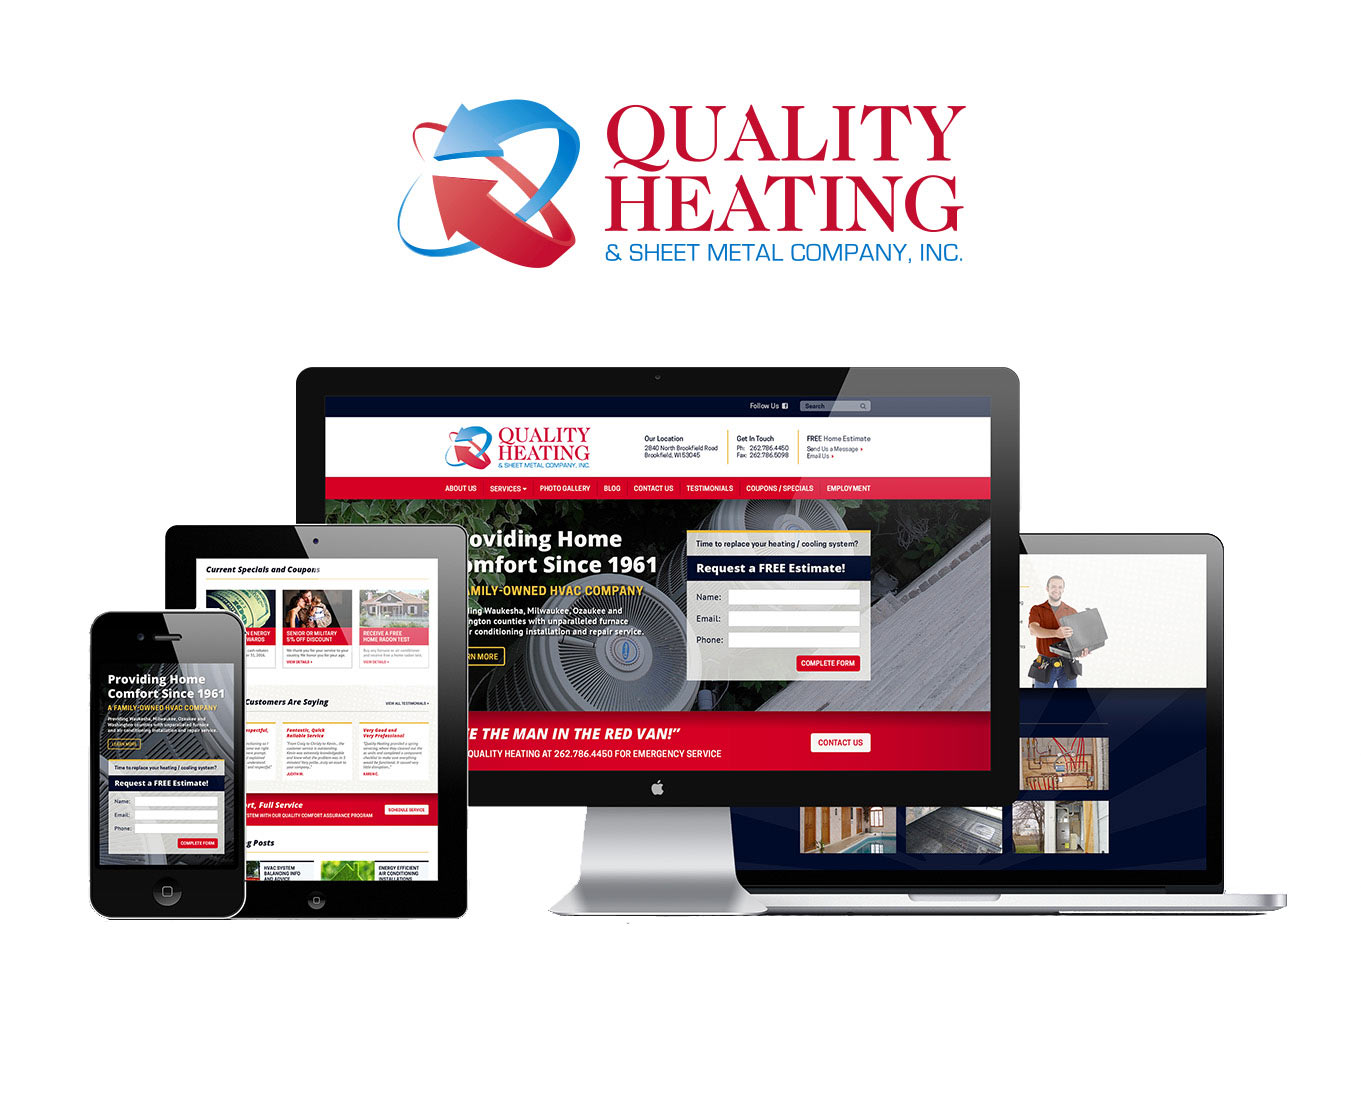 Quality Heating & Sheet Metal